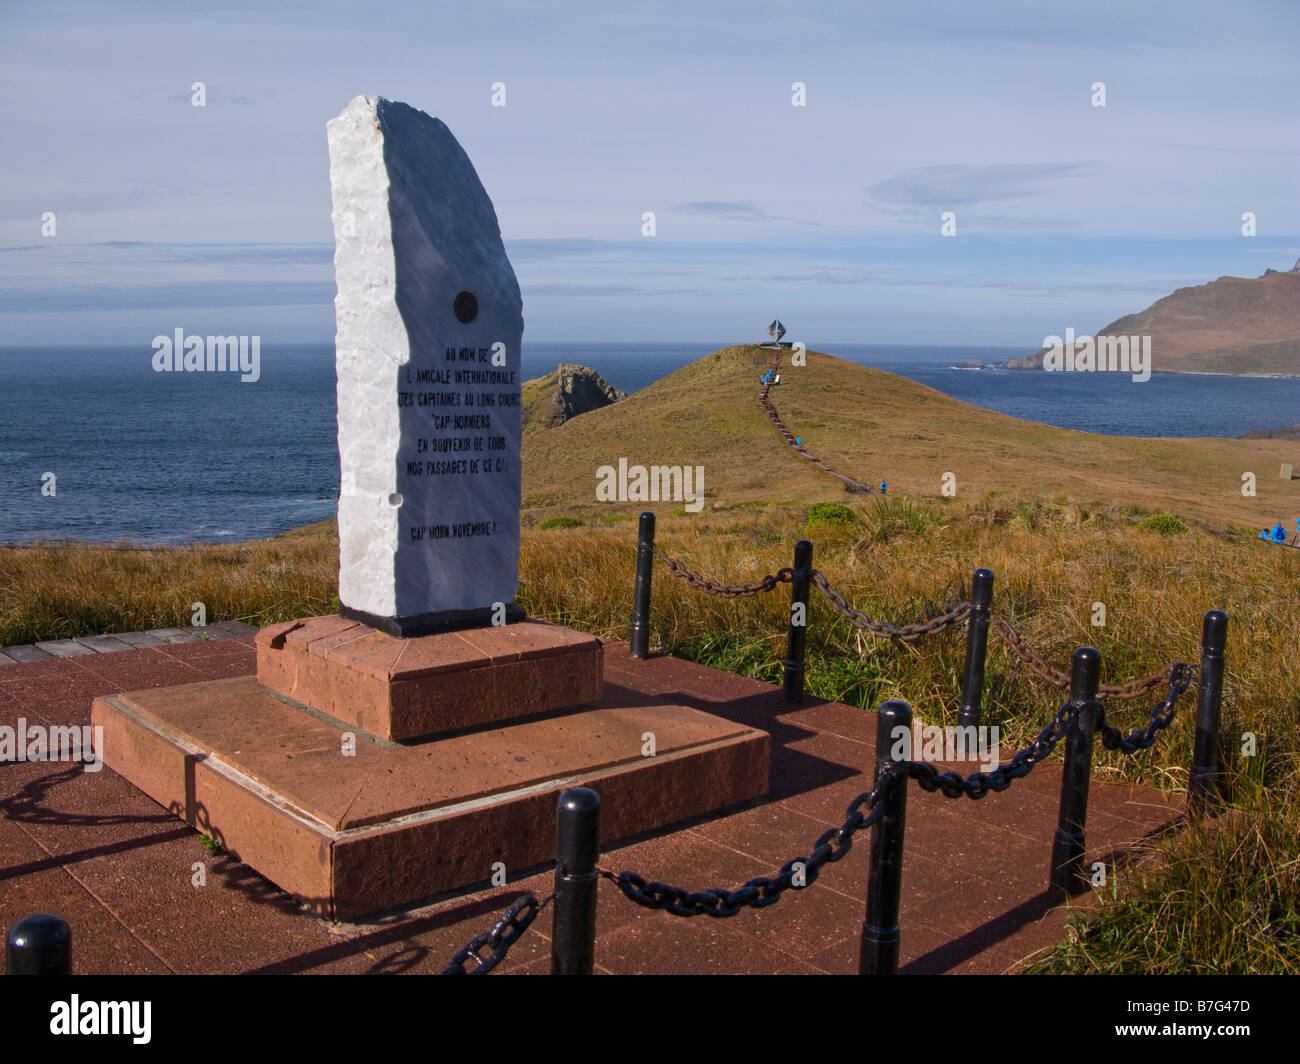 Friendship monument at Cape Horn, Patagonia, Chile, South America - Stock Image